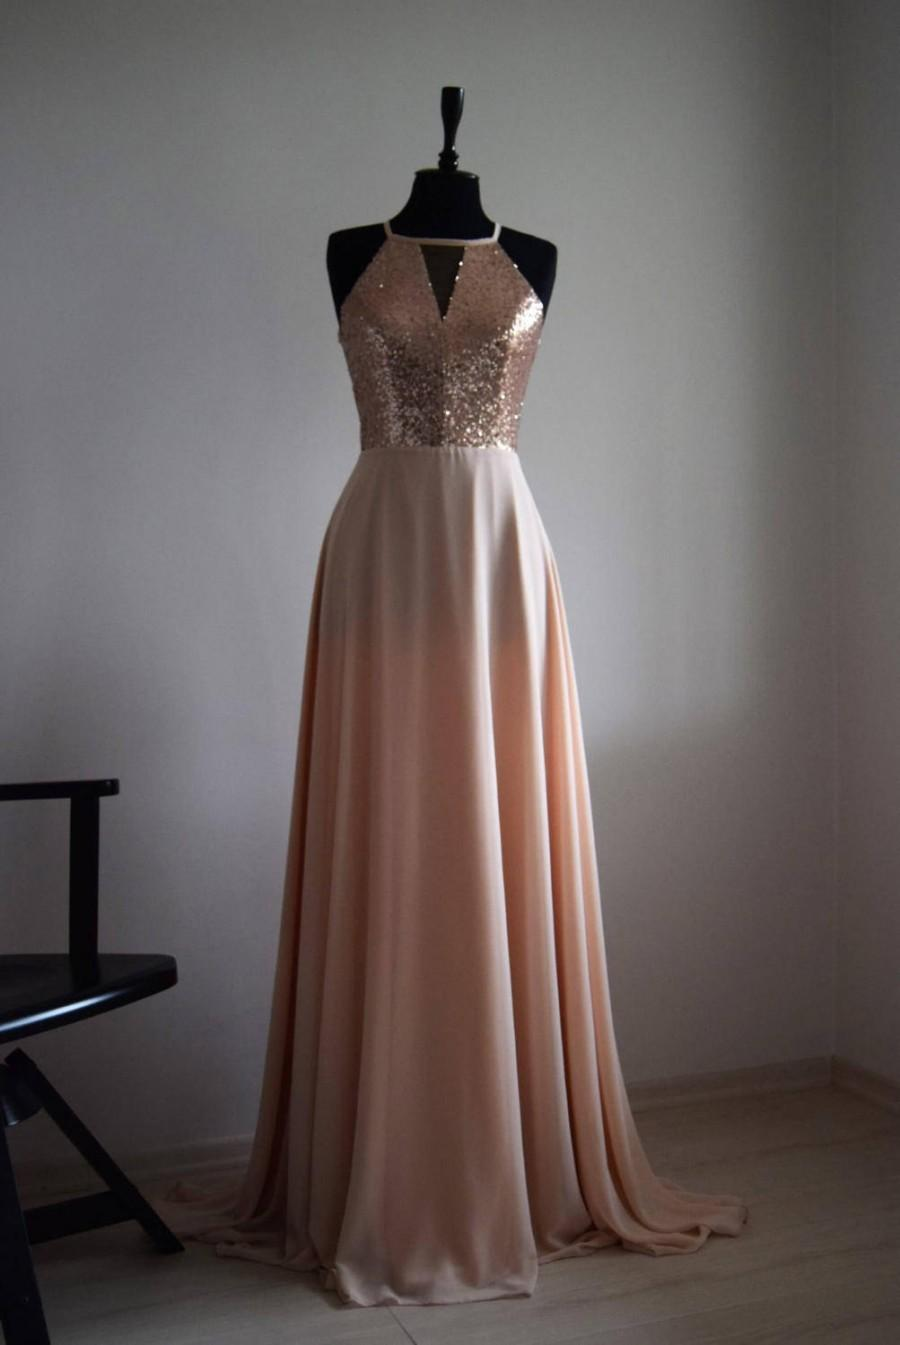 Wedding - Charming Chiffon With Top Sequin Blush Pink Bridesmaid Dress, Handmade, Sleeveless Full Length Sequin Evening Prom Dress, Wedding Party